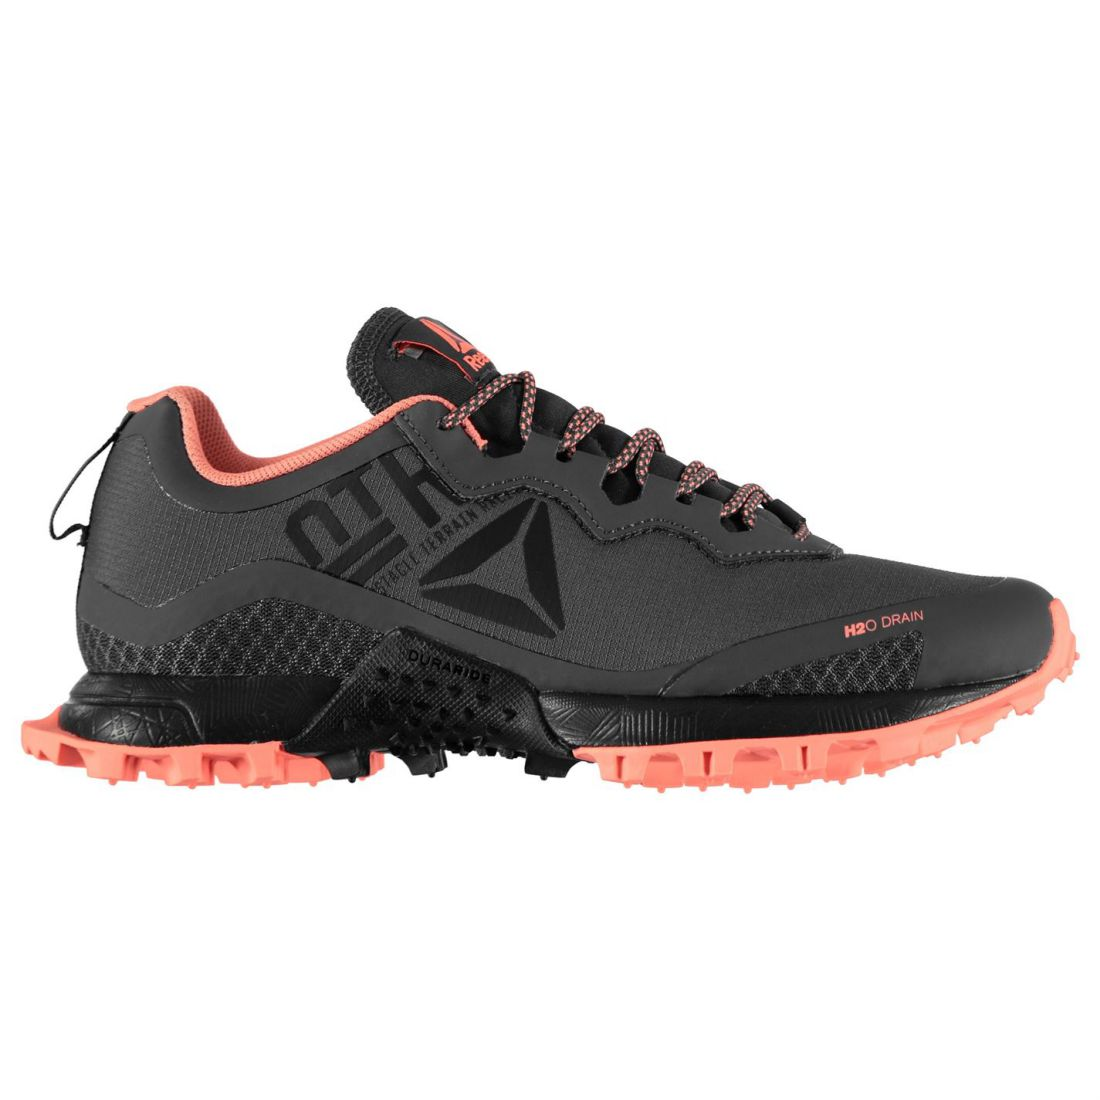 f5c8ecf5e2c Image is loading Reebok-All-Terrain-Craze-Running-Shoes-Trail-Womens